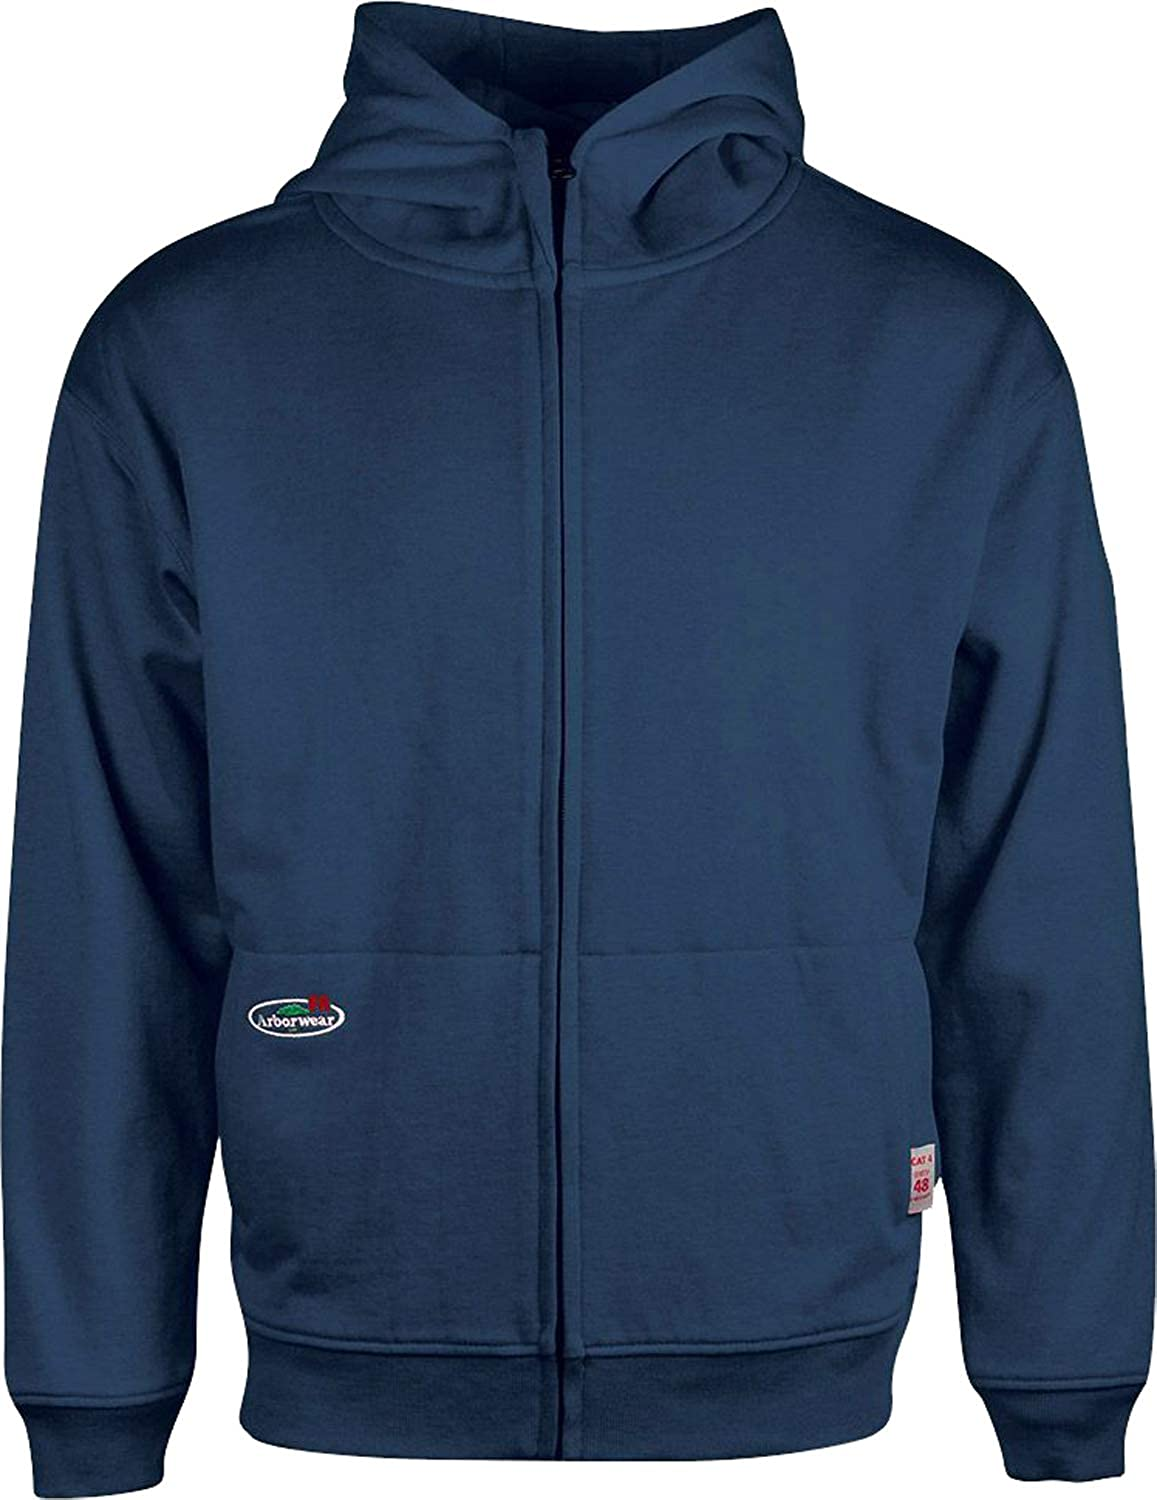 Arborwear Men's FR Double Thick Full Zip Sweatshirt